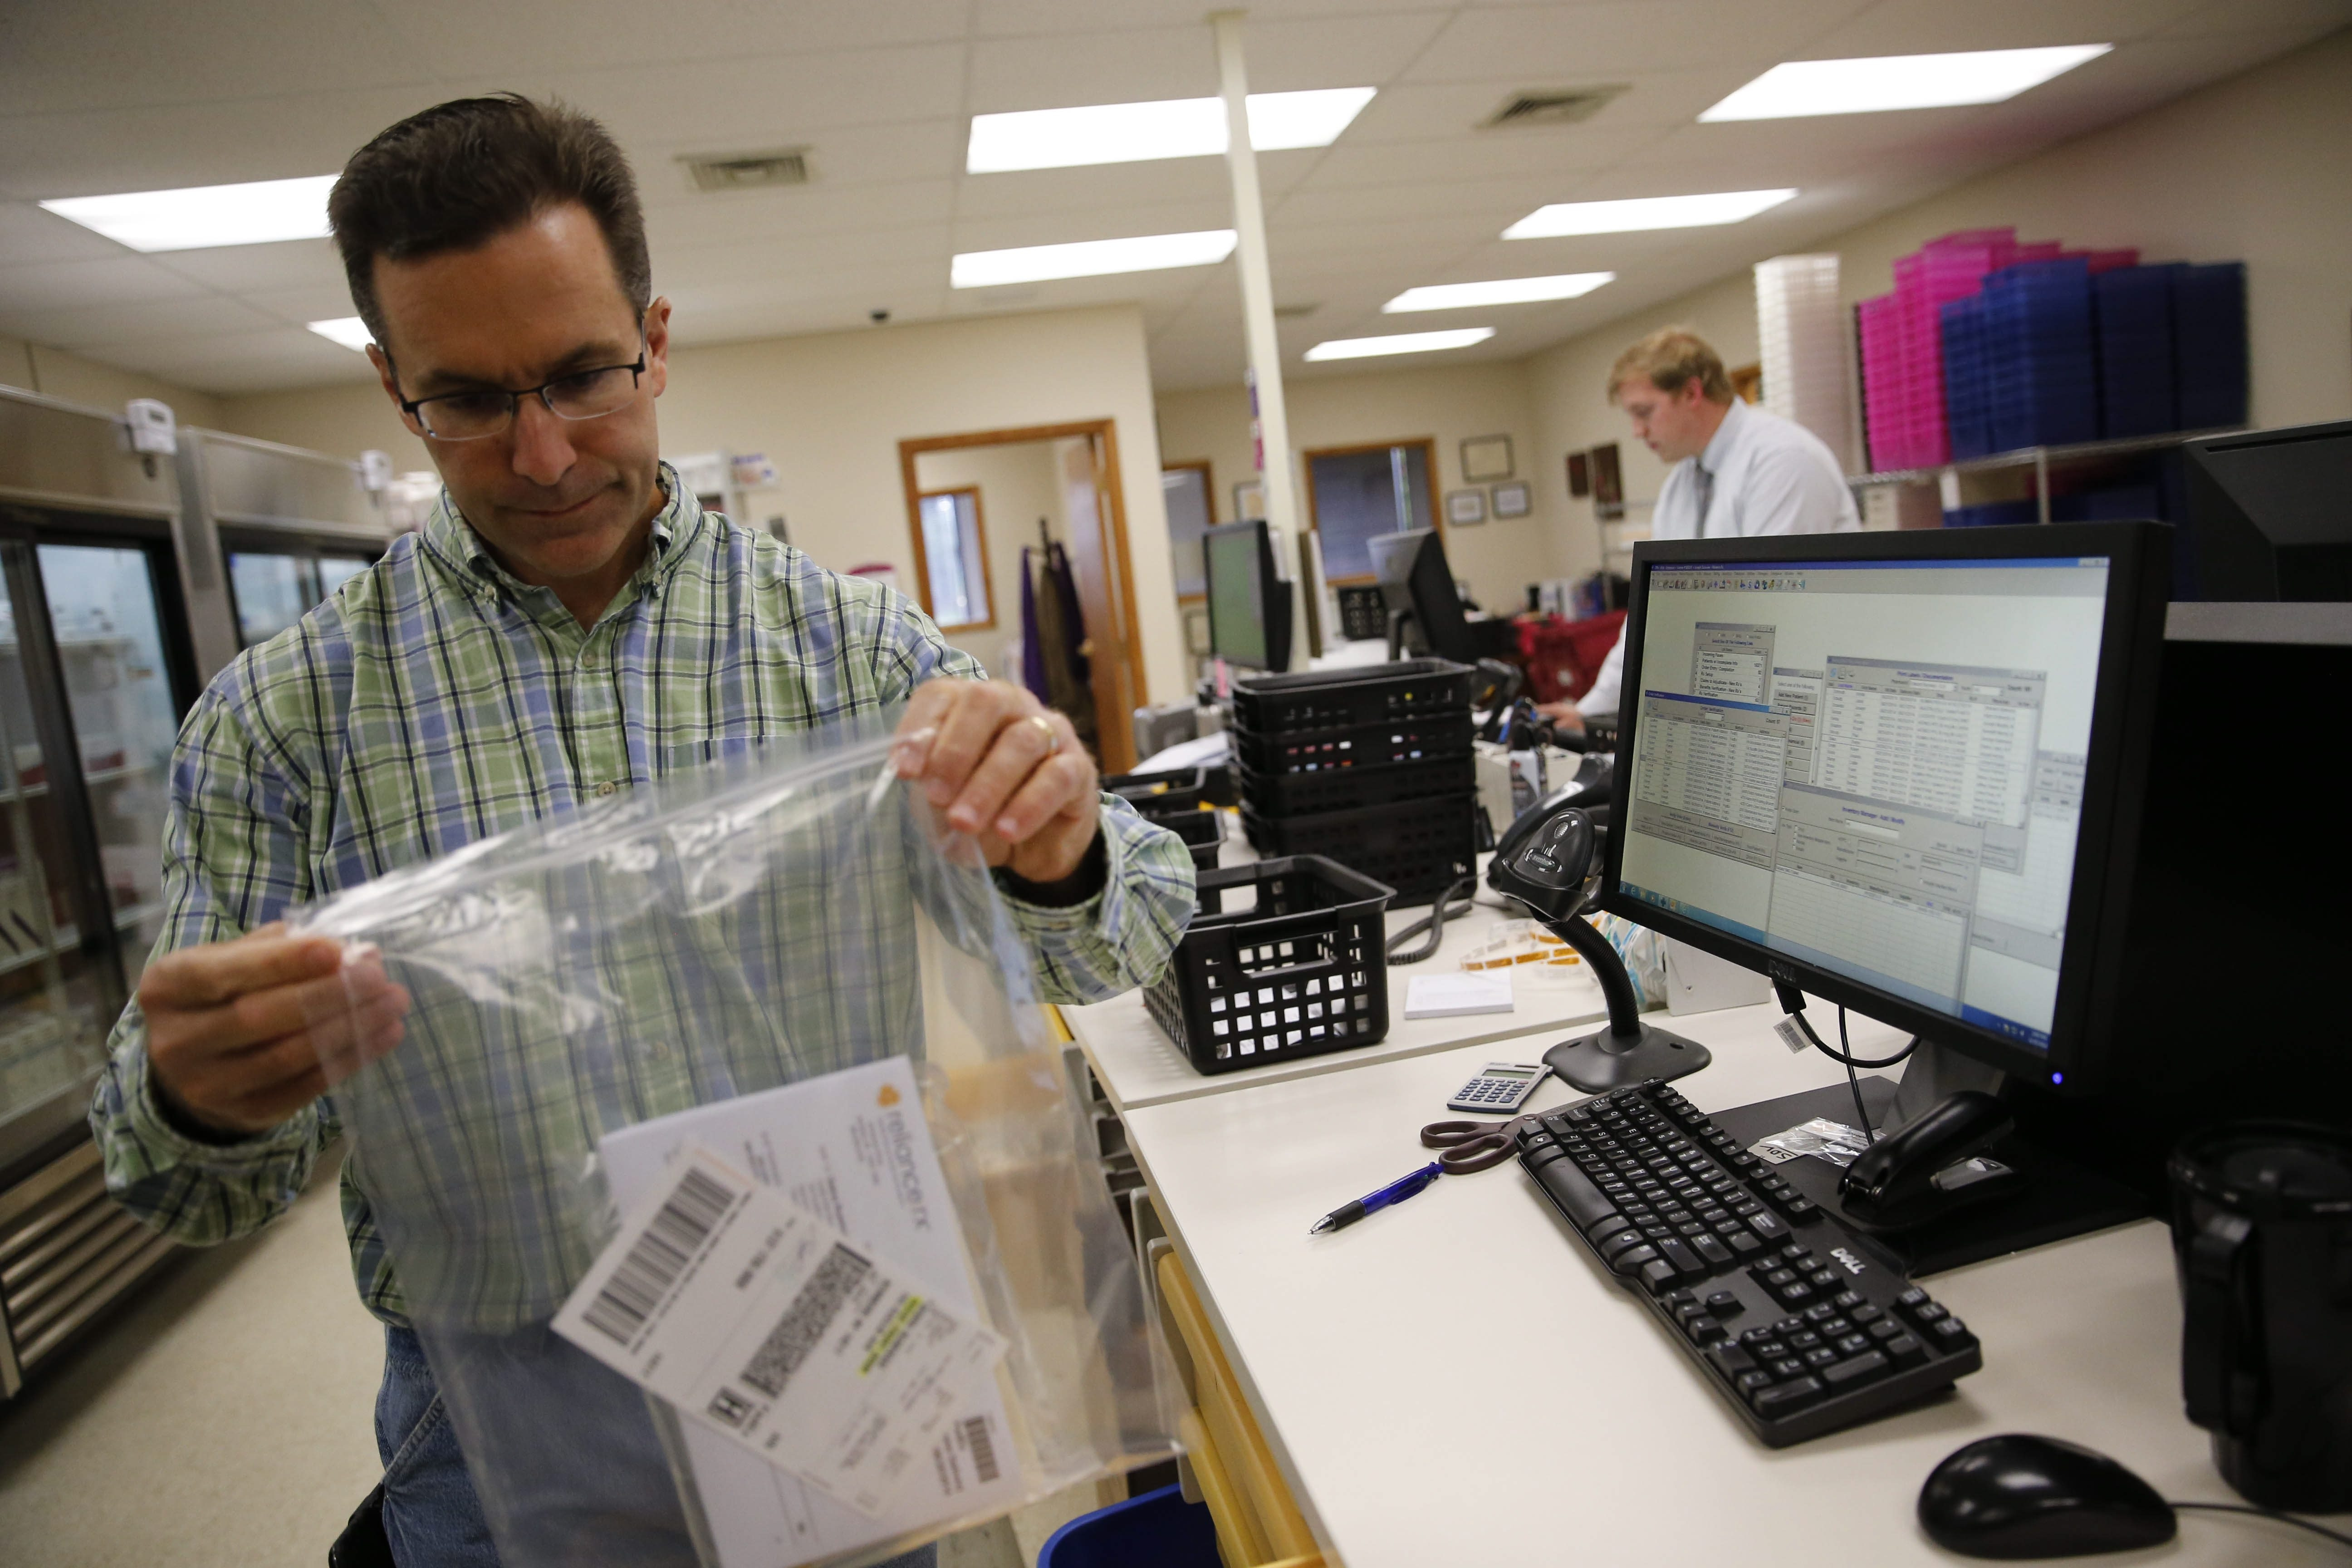 Pharmacist Joe Surowiec fills a prescription in the pharmacy at RelianceRx in Amherst on Wednesday.